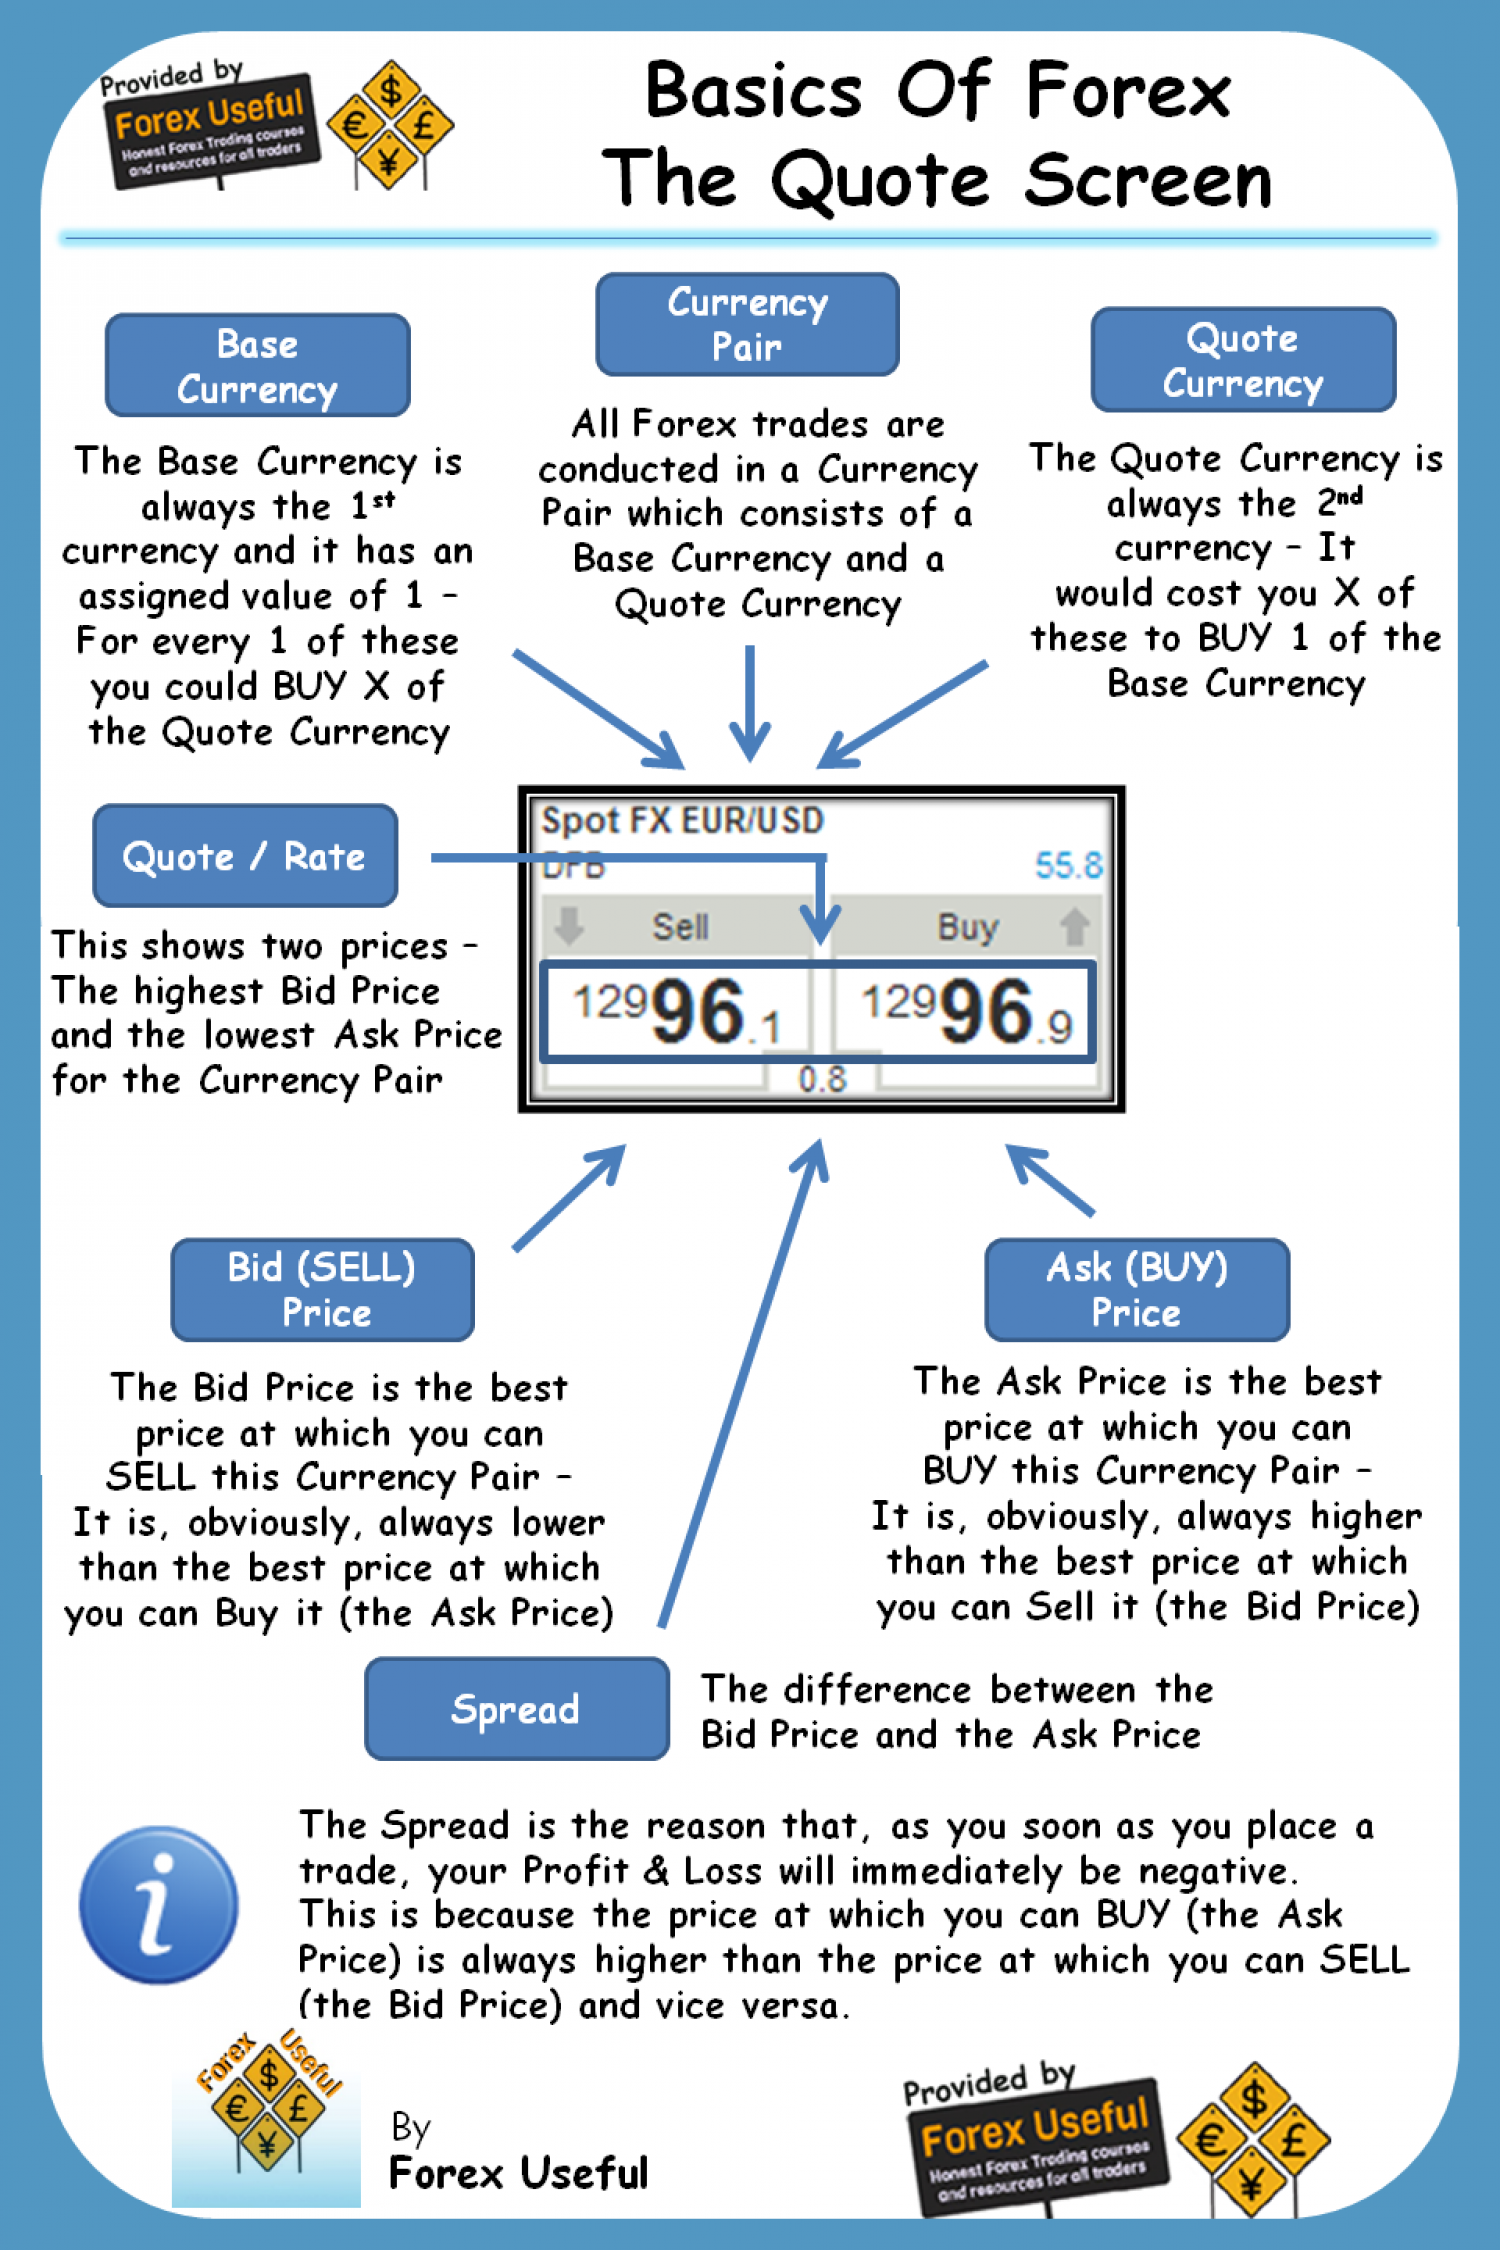 Basics Of Forex - The Quote Screen Infographic